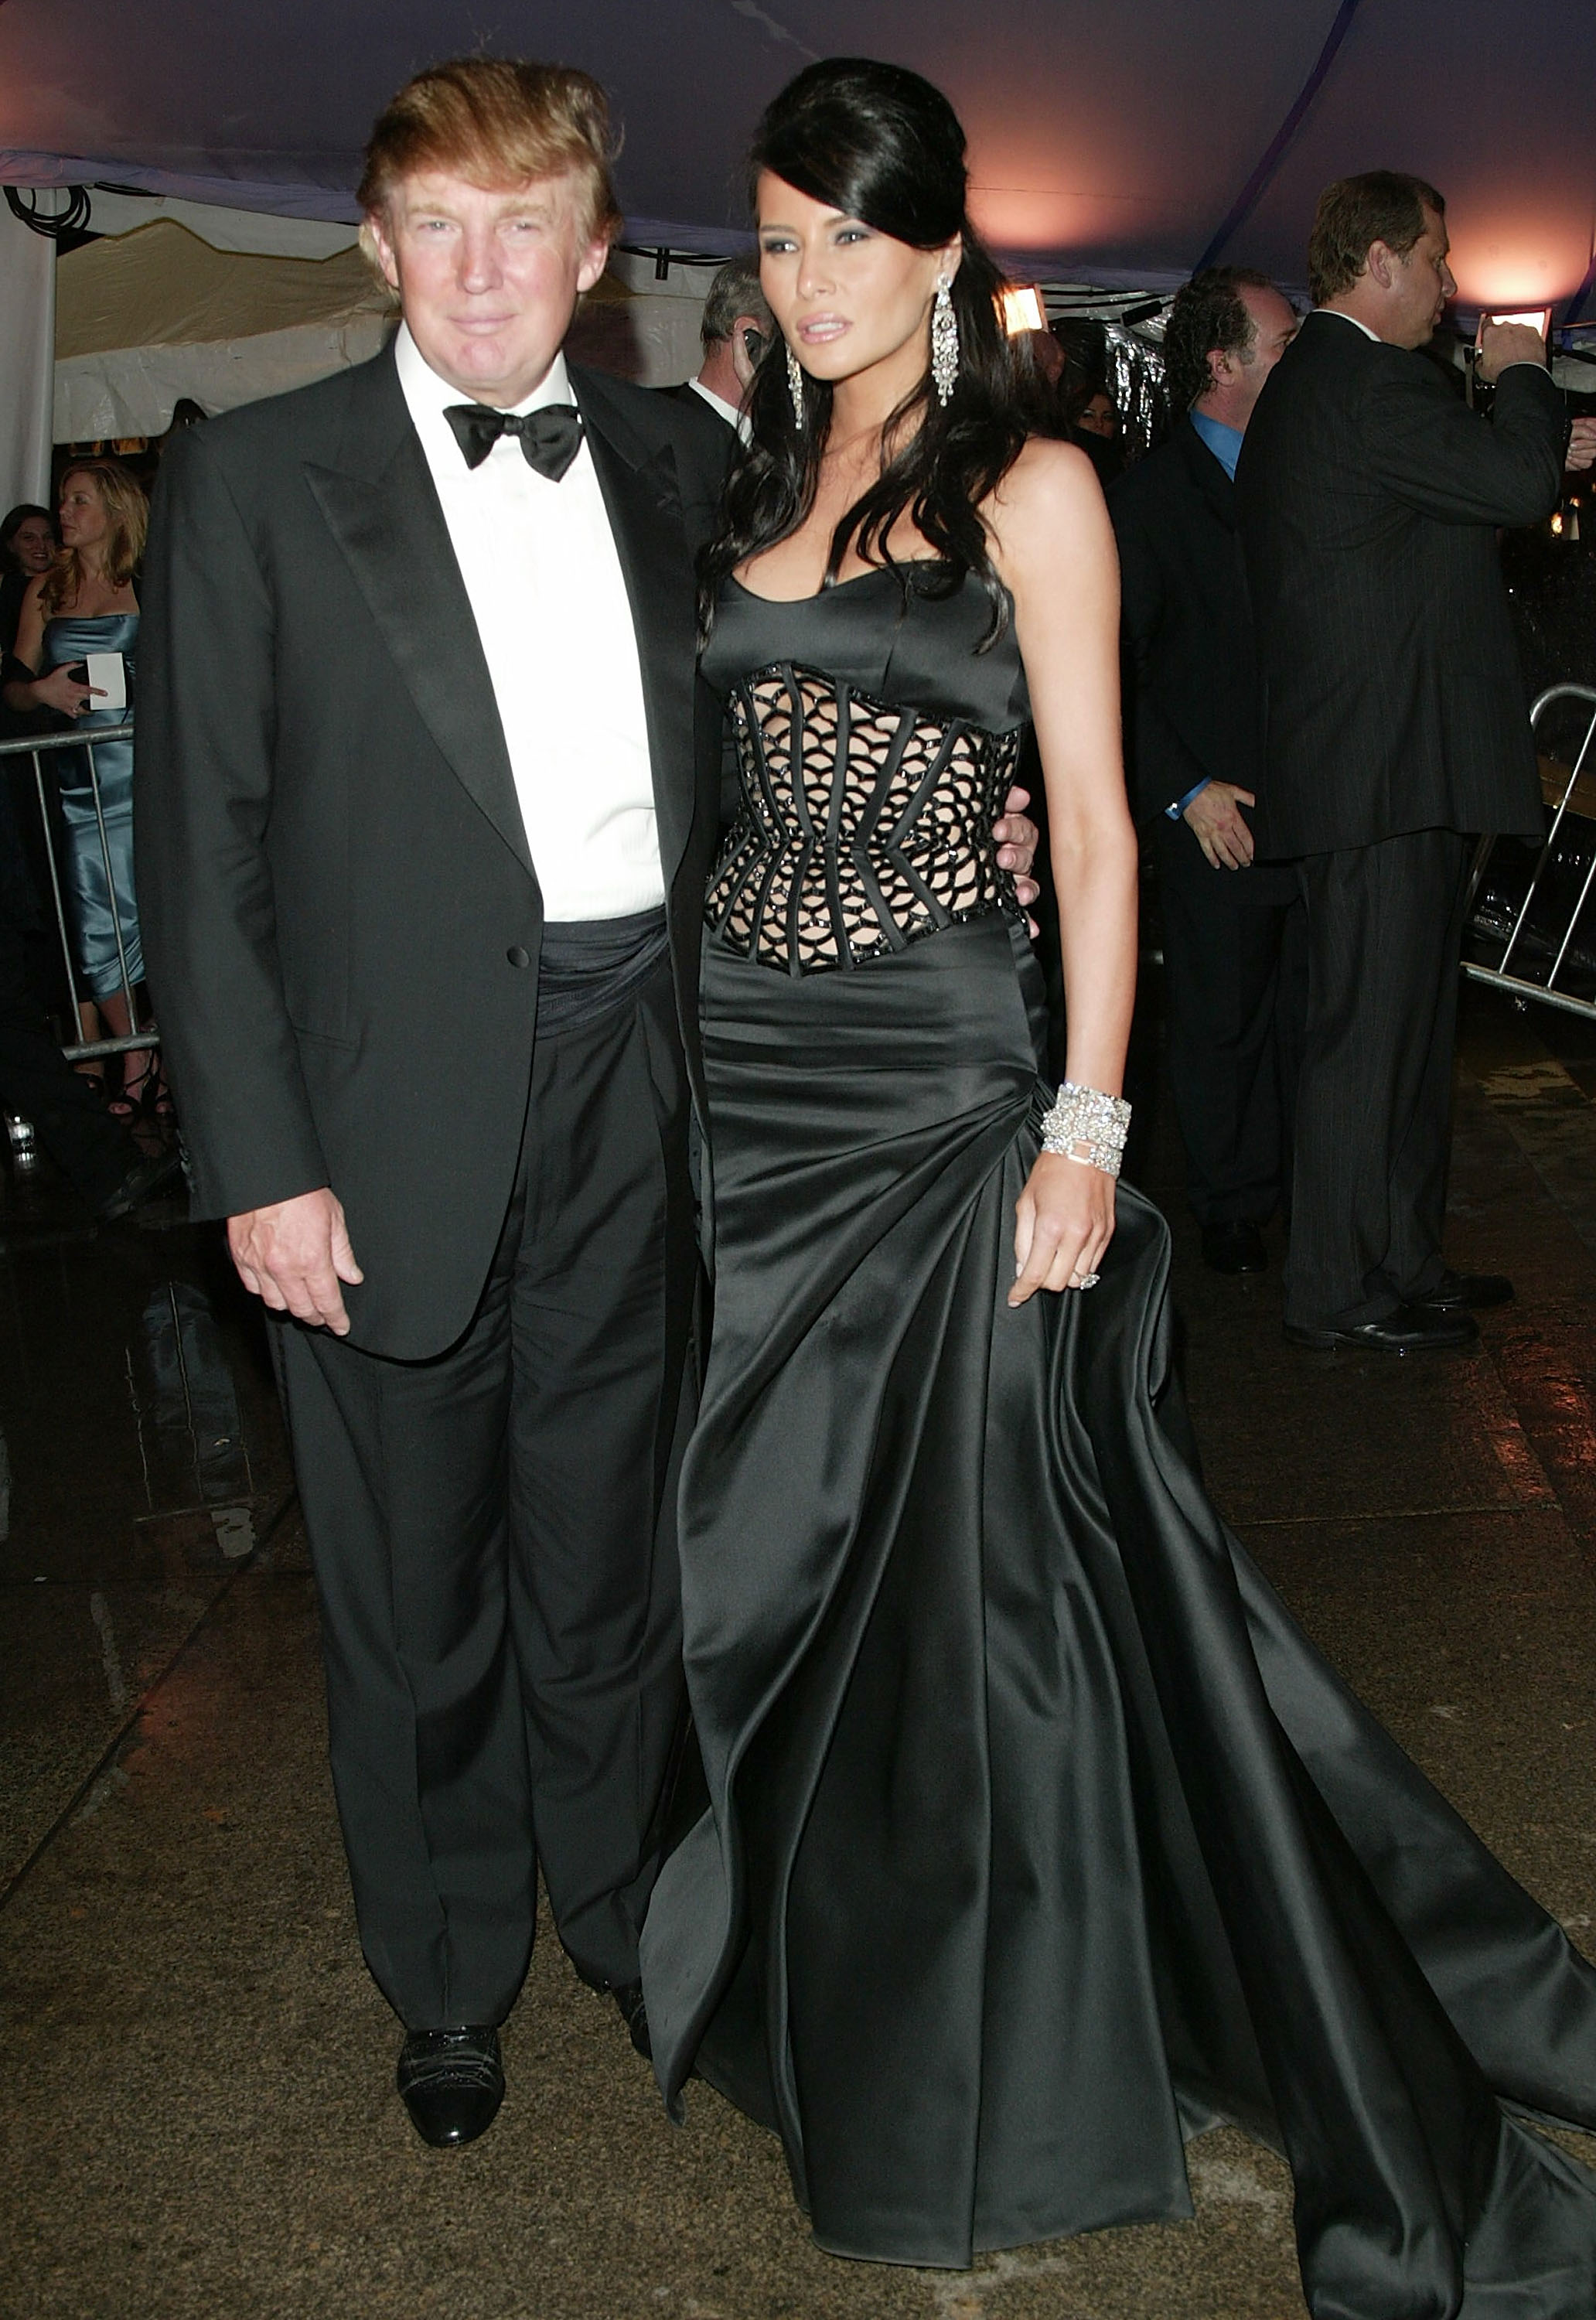 Did-You-Know-Donald-Trump-Proposed-To-Melanie-Trump-At-The-2004-Met-Gala